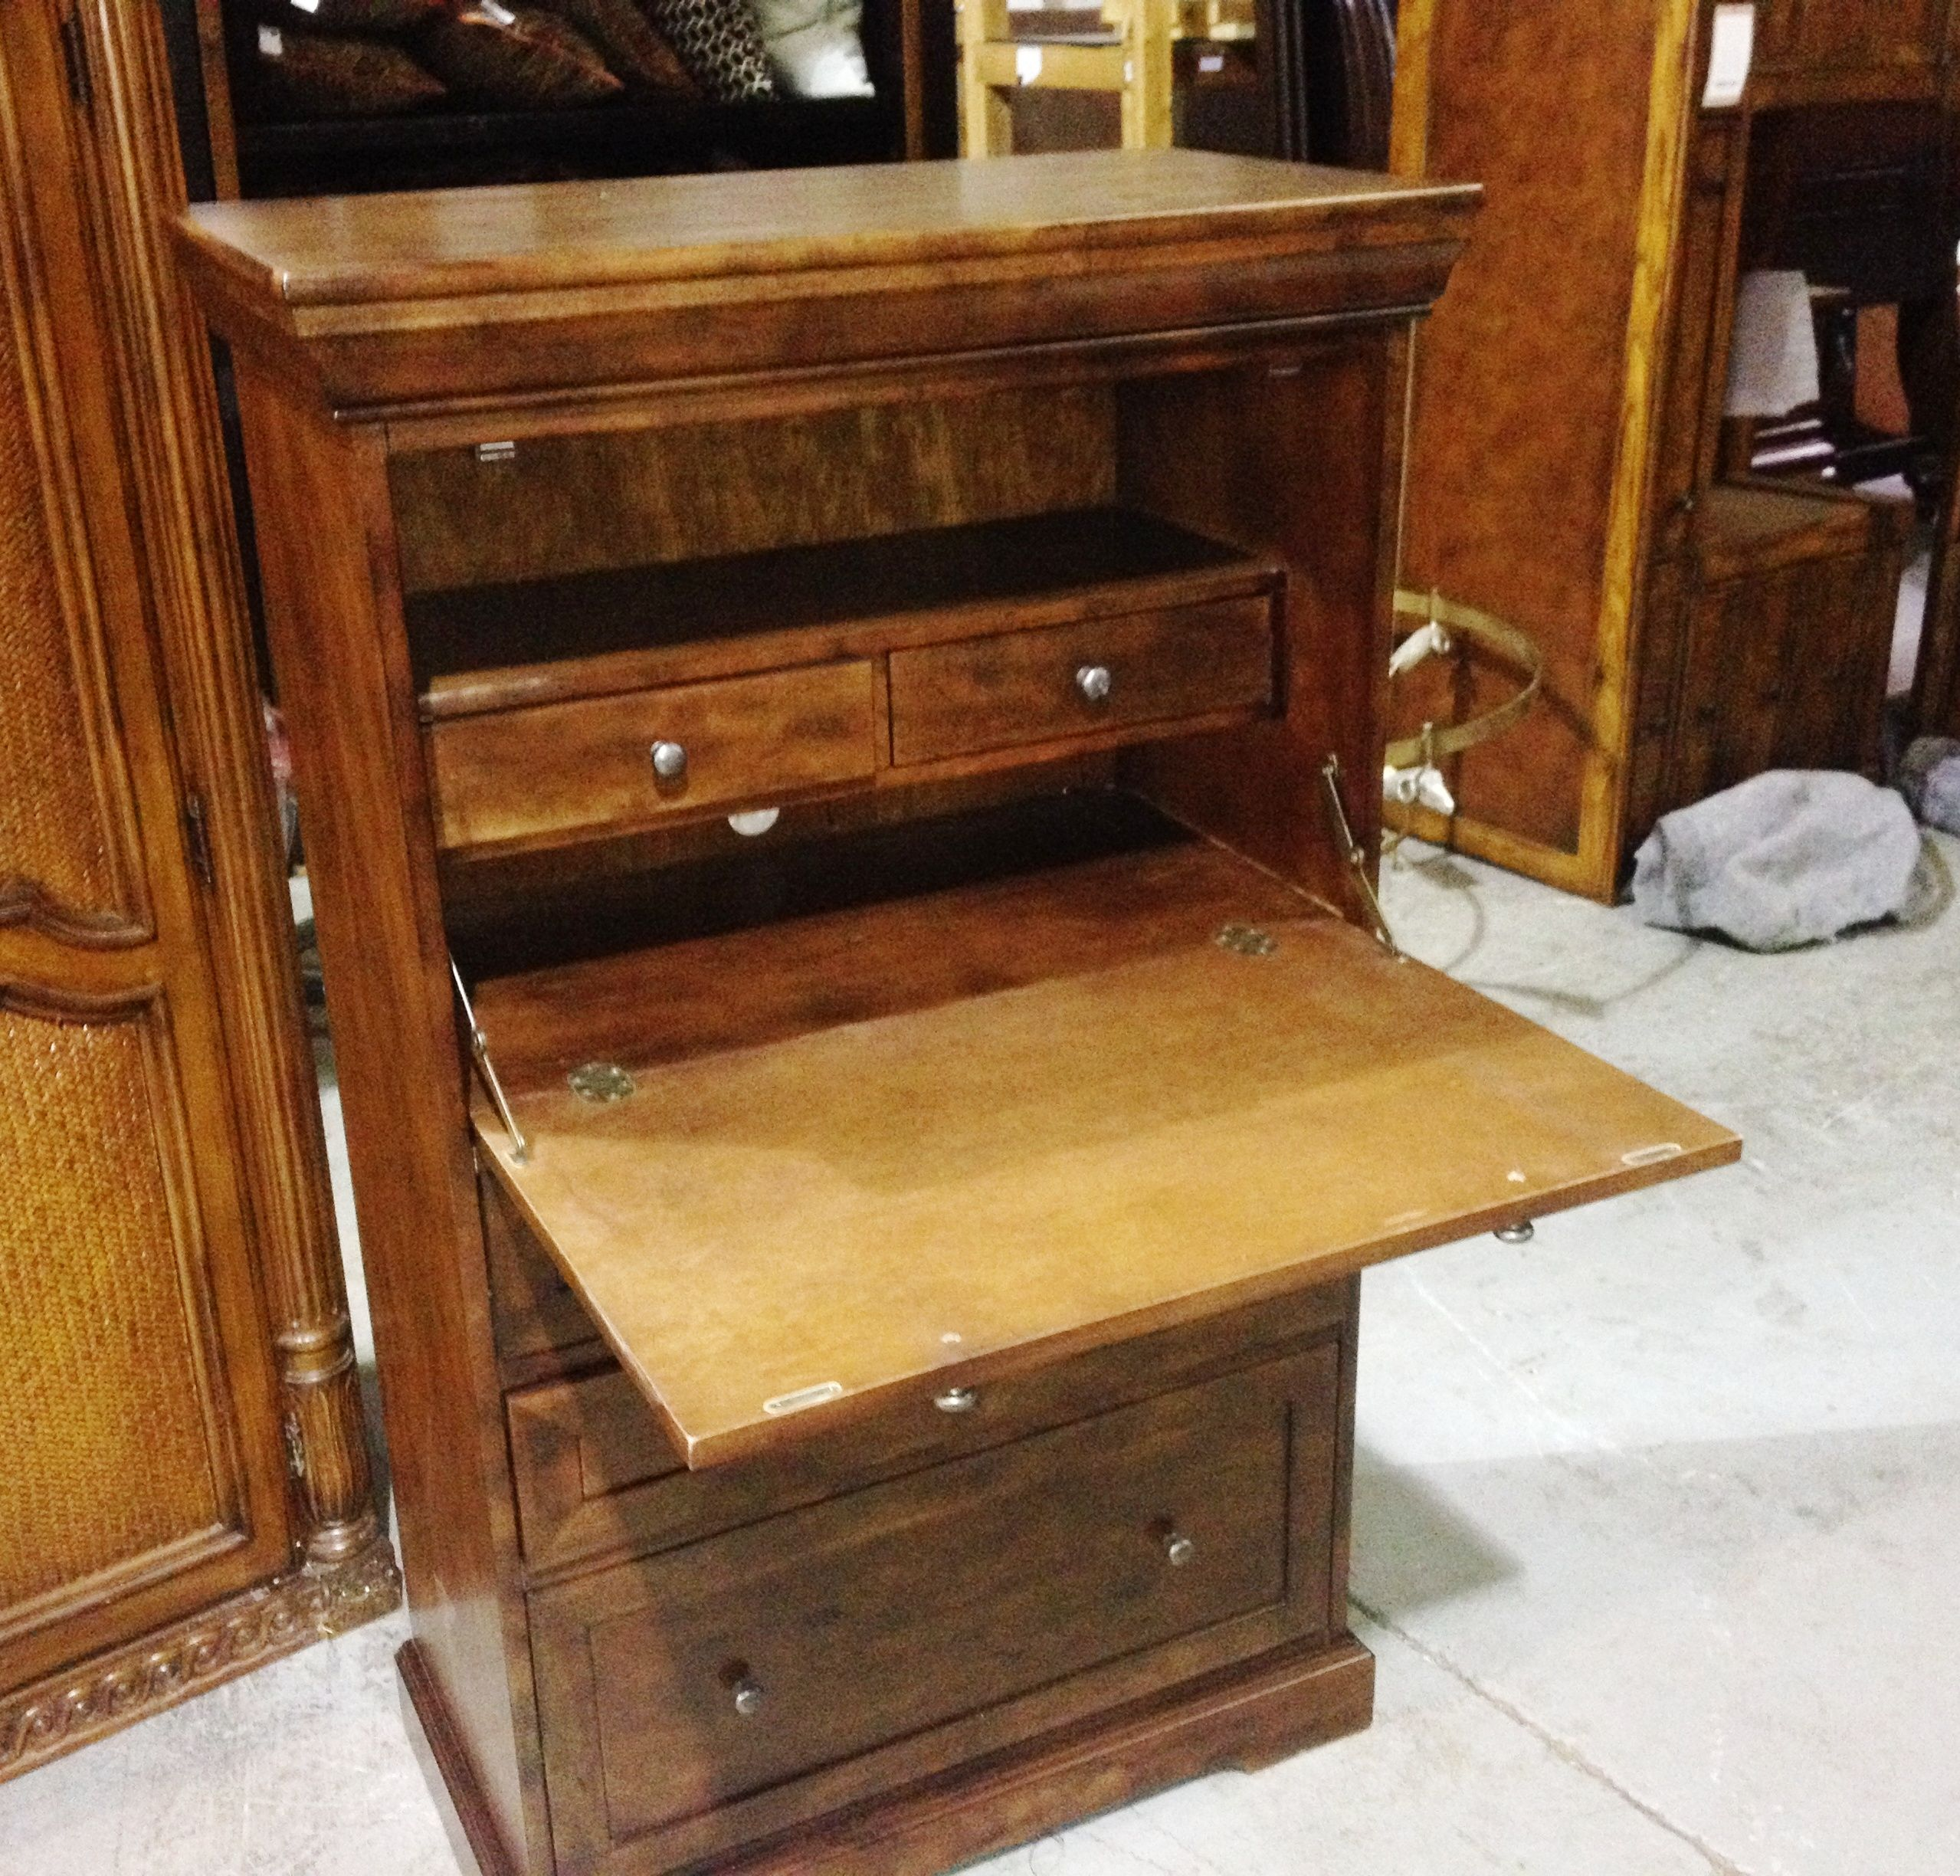 pin solid secretary built is has this furniture desk pull world of maple one stein it a